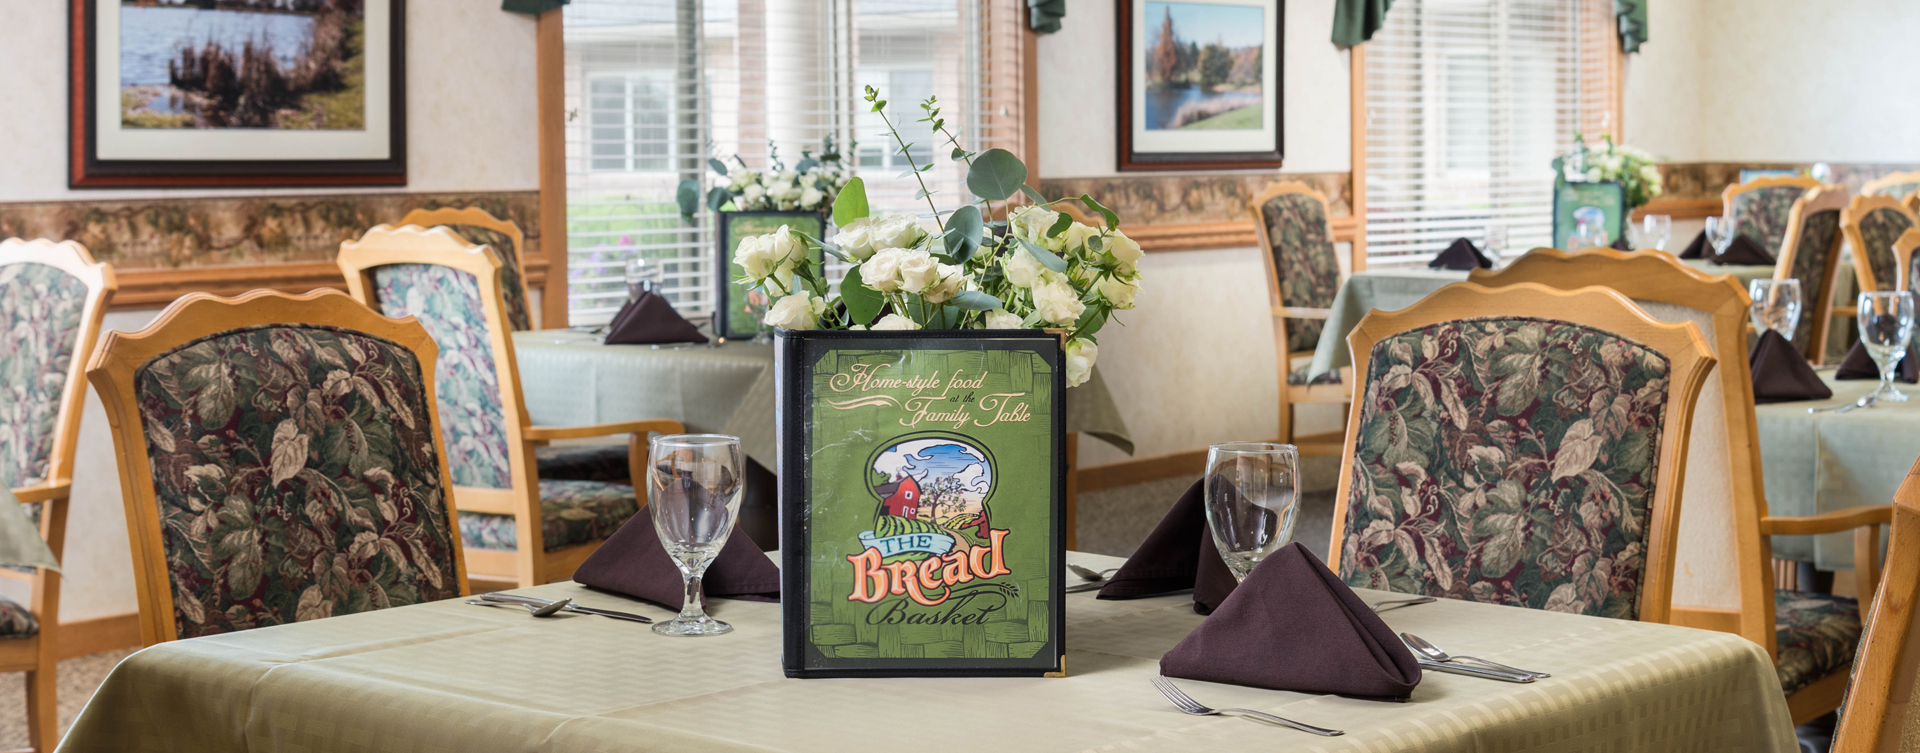 Food is best when shared with friends in the dining room at Bickford of Middletown